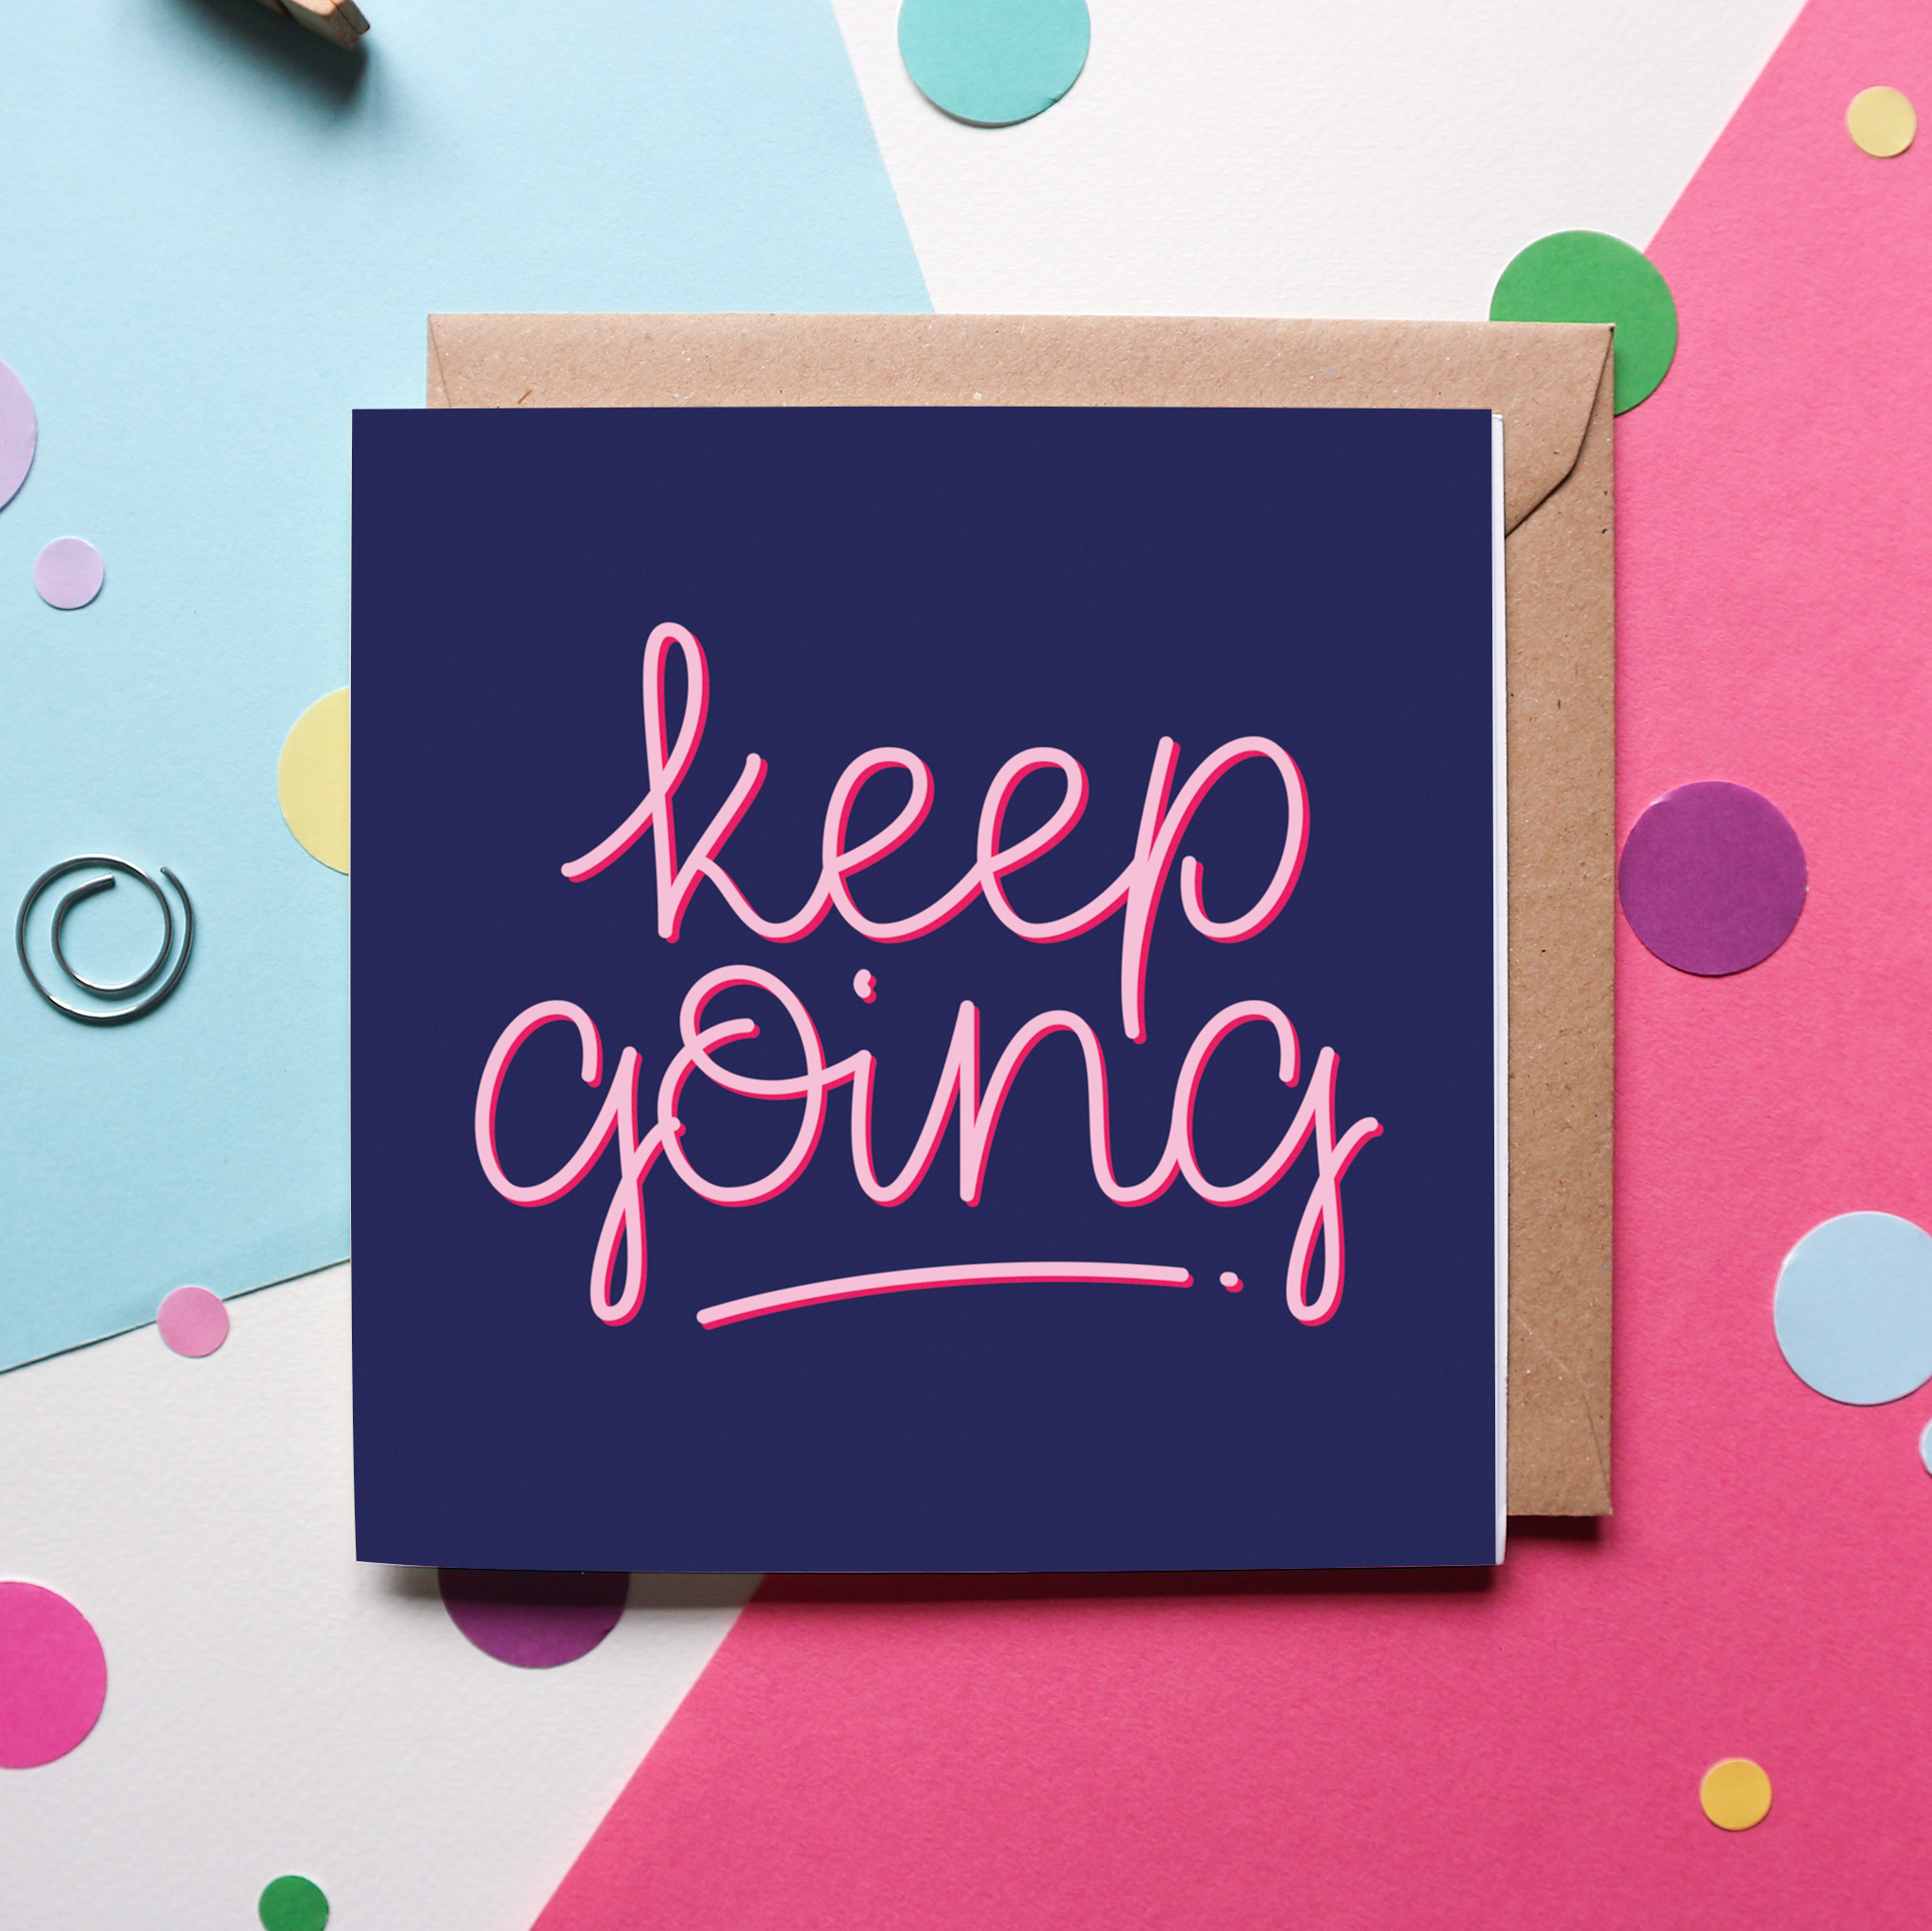 """A charming hand-lettered design that reads """"Keep Going"""" in pink cursive, against a navy blue background on a greeting card. The greeting card sits against a brown, kraft envelope and against a pink and blue background with colourful confetti and paperclips."""